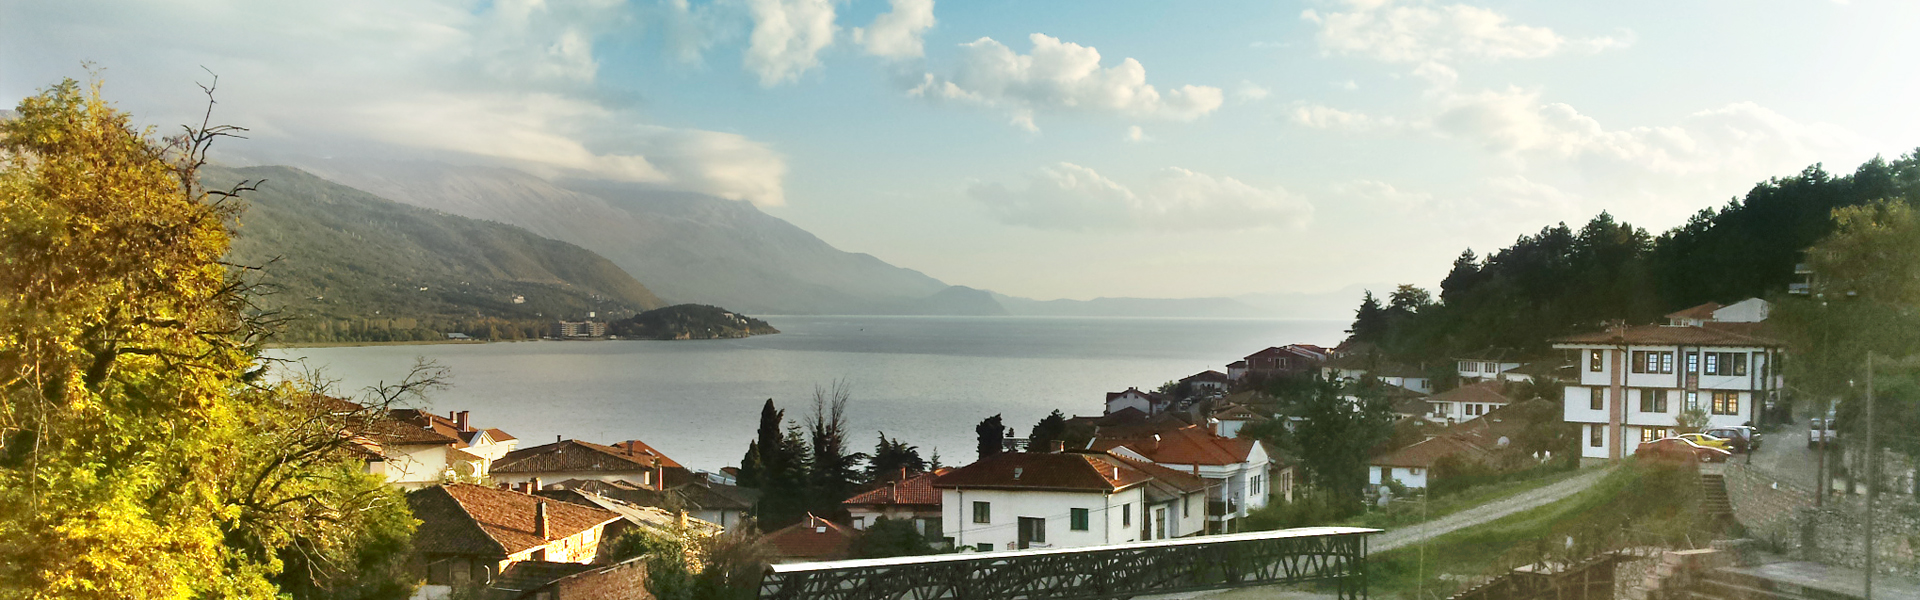 macedonia-ohrid